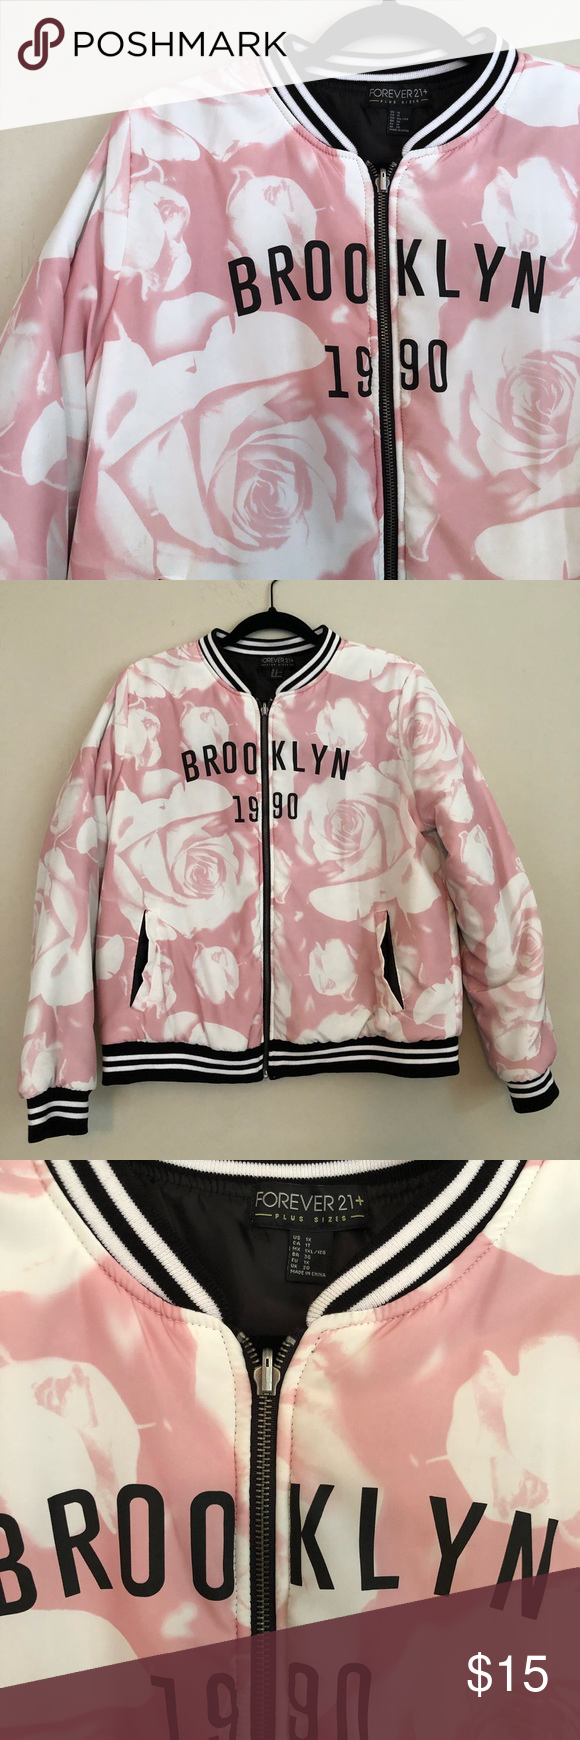 Cute Bomber Jacket Cute Bomber Jackets Floral Bomber Jacket Bomber Jacket [ 1740 x 580 Pixel ]